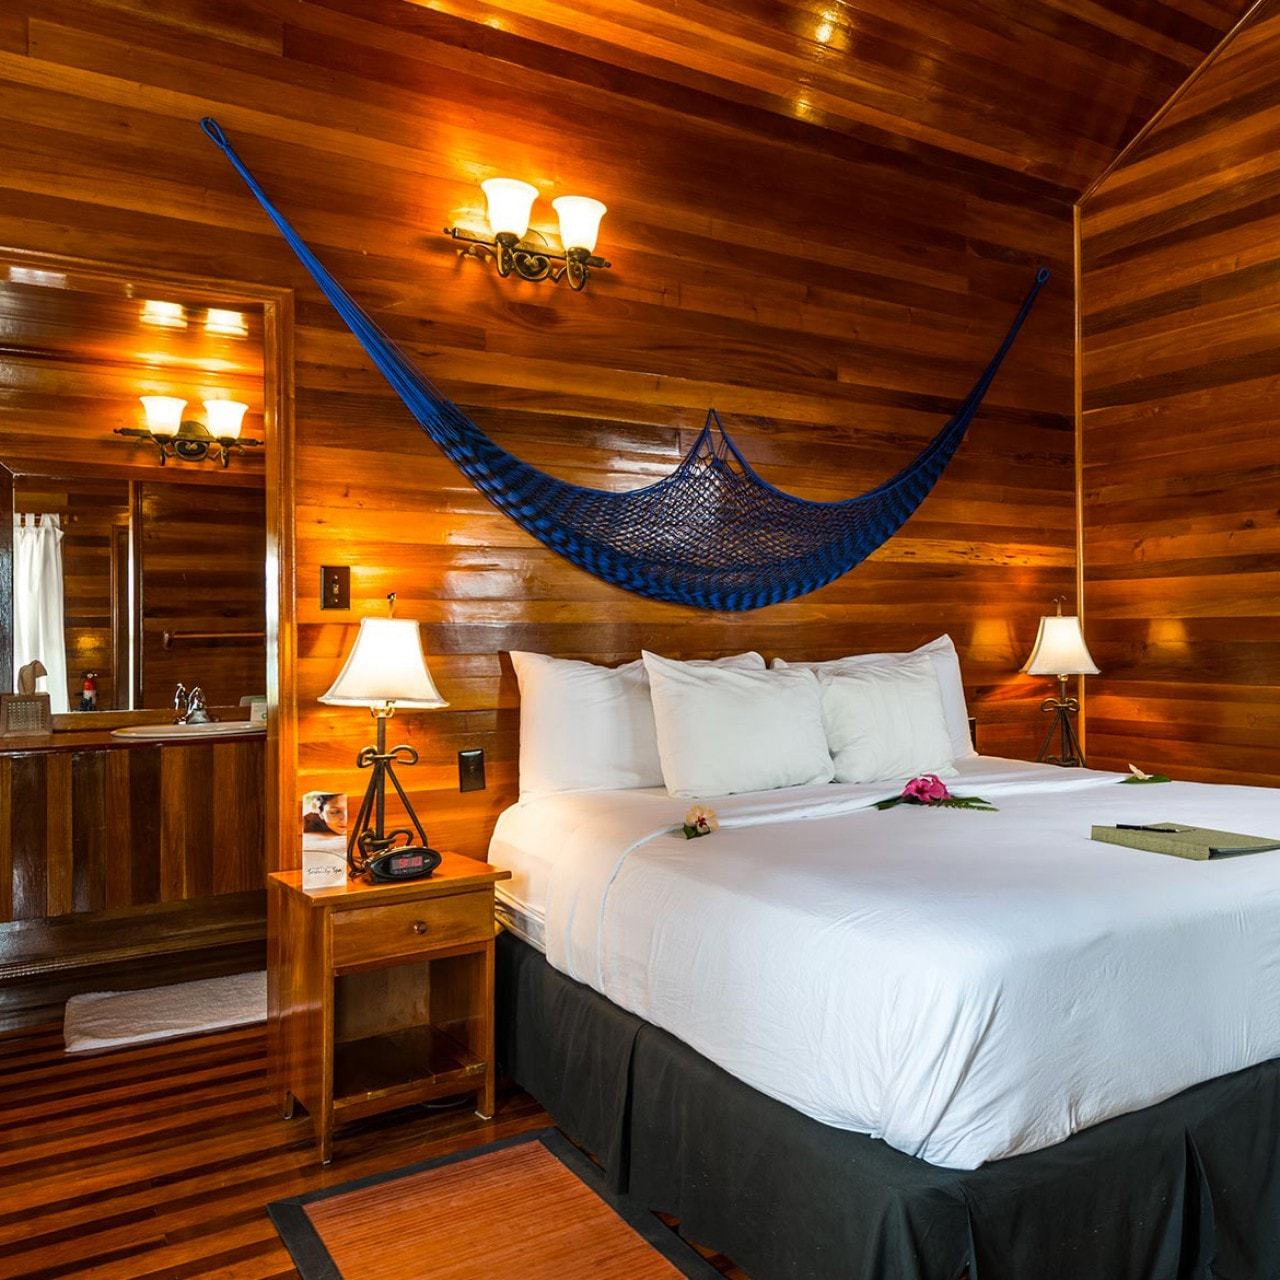 BZE_T_ISL_RESORT_SUPERIOR_ROOM.jpg